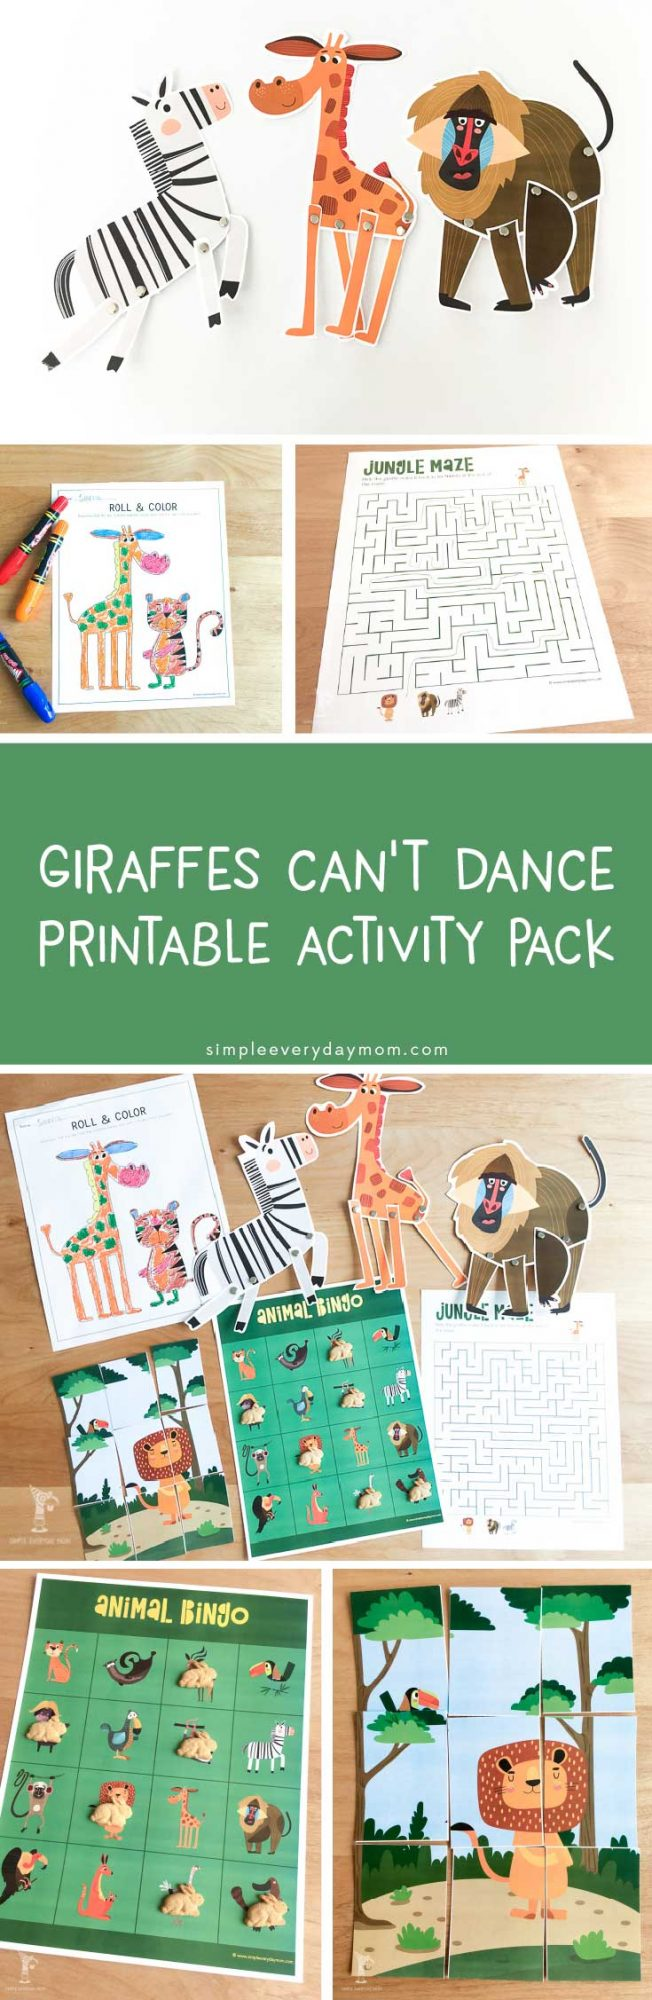 Giraffes Can't Dance Activities | Kids will love these book activities that encourage creativity and are so much fun to do.